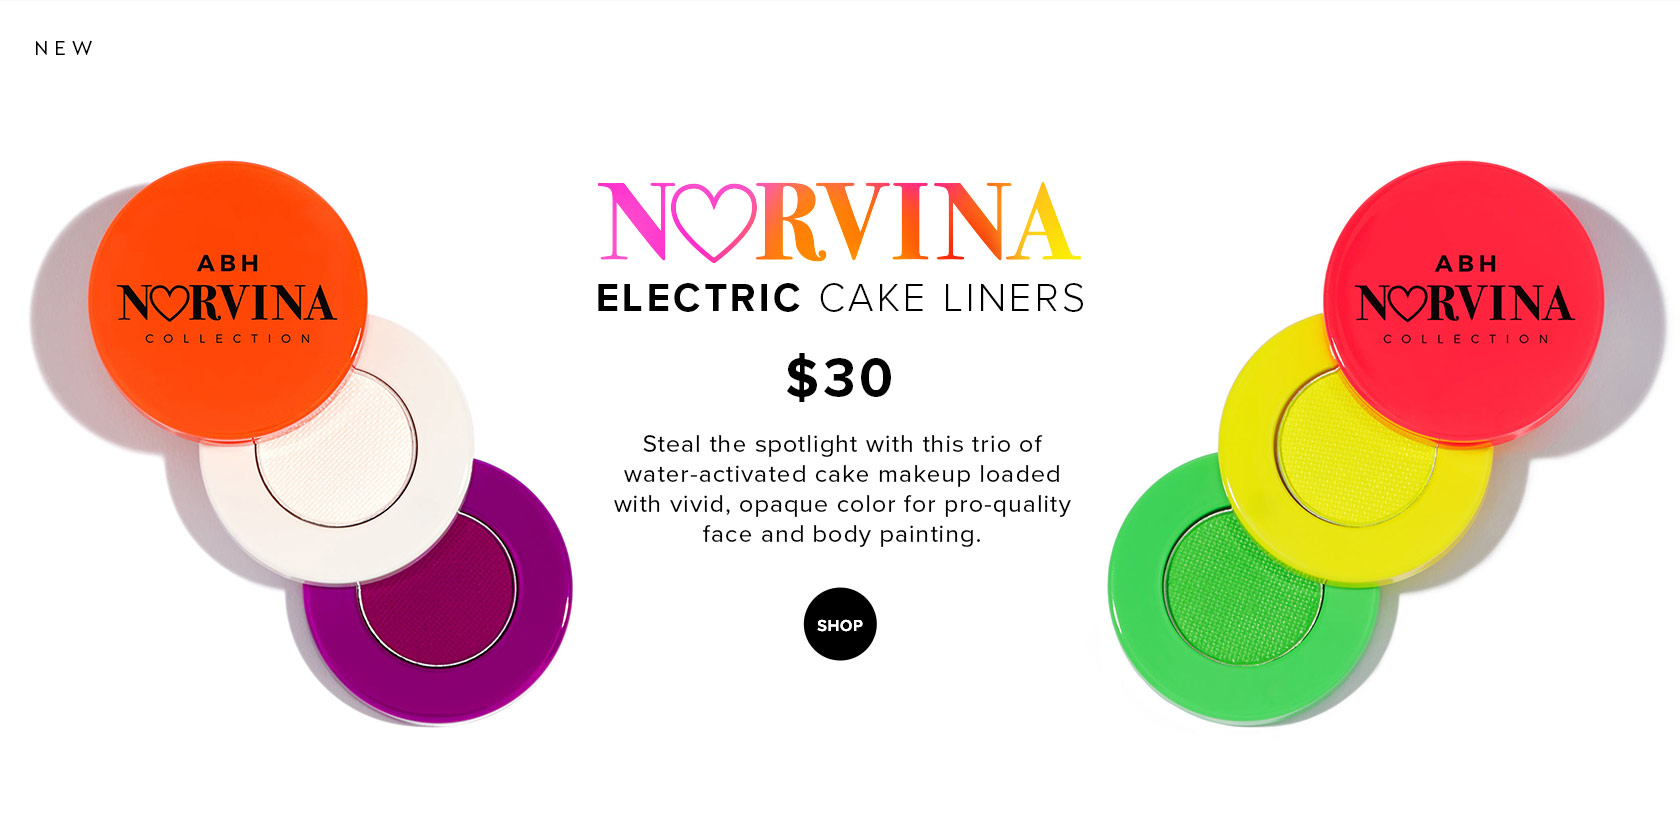 Norvina Cake Liners